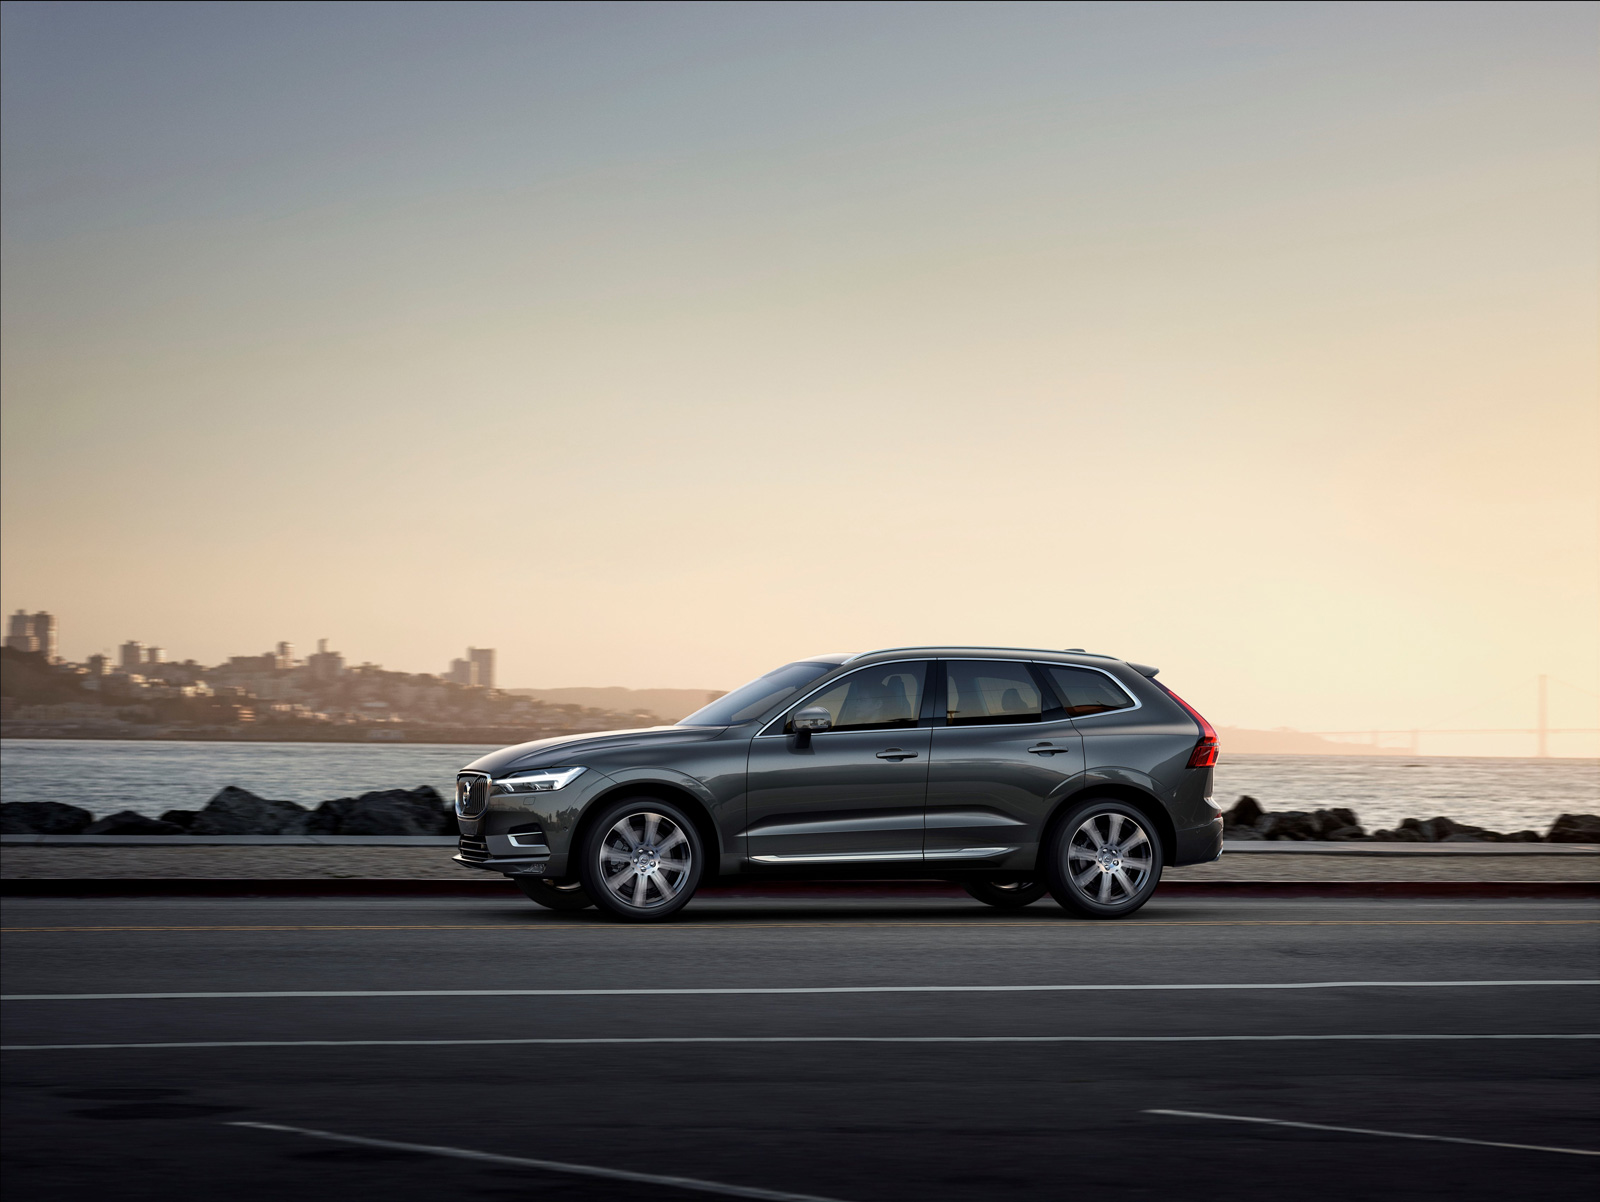 price doylestown gallery htm new volvo small interior finance thumbnail offers keystone suv features deals lease prices and pa